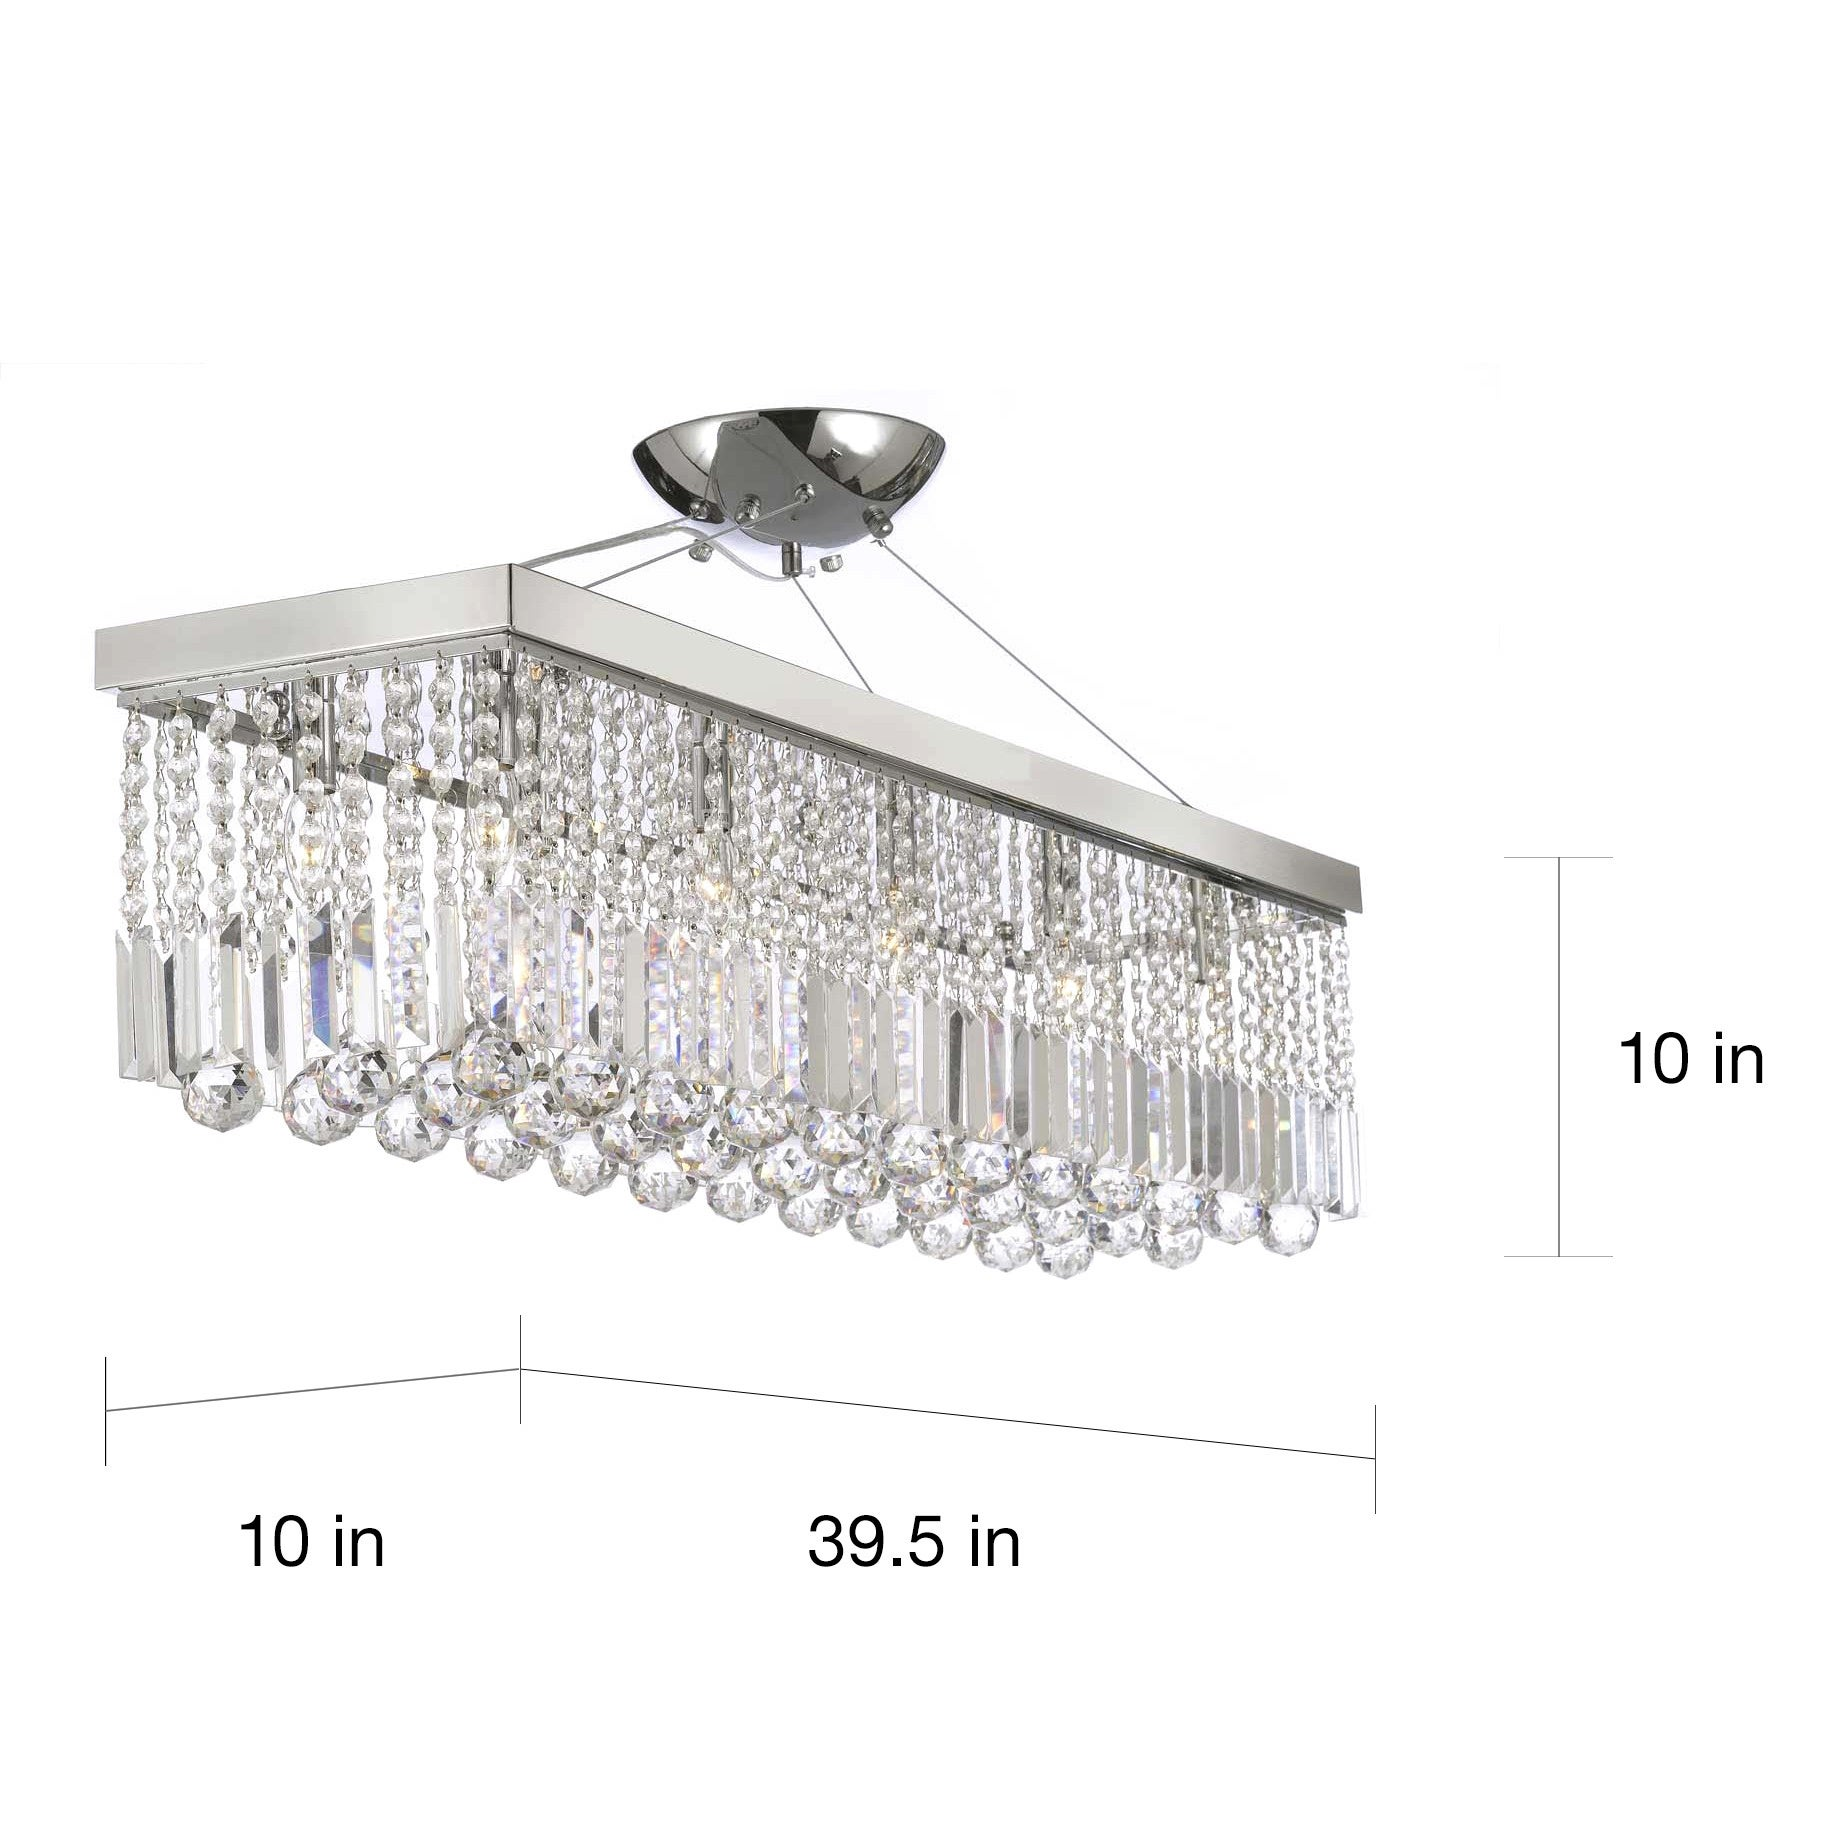 light led marquis chr ceiling chandelier chrome by waterford stunning pendant bresna wf bathroom